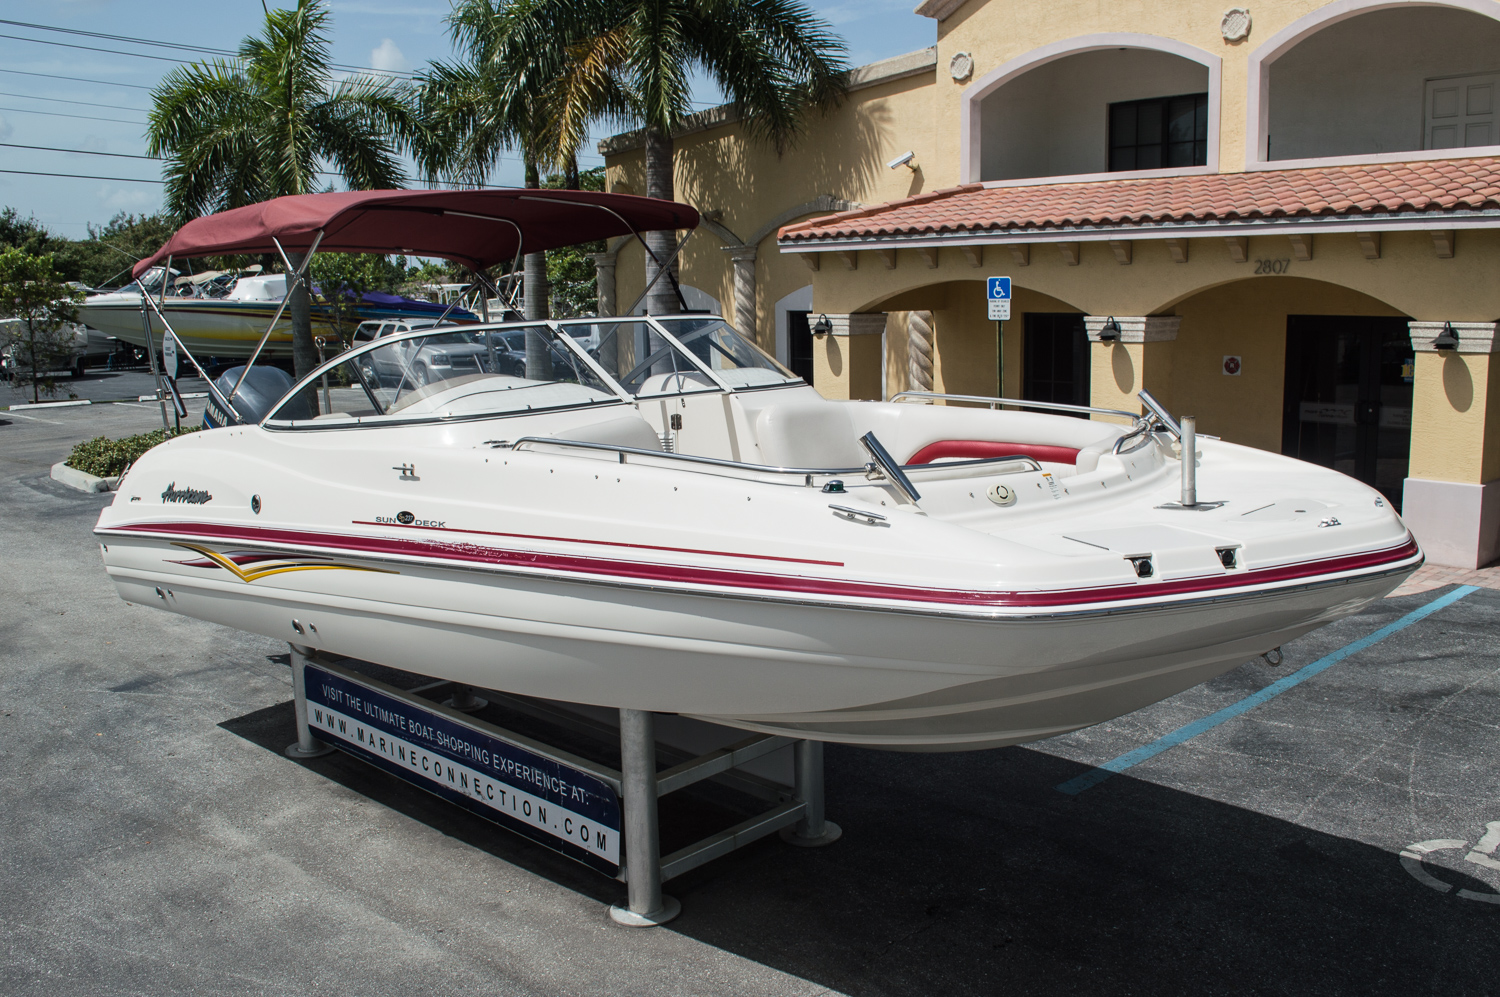 Used 2007 hurricane sundeck sd 237 ob boat for sale in for Hurricane sundeck for sale